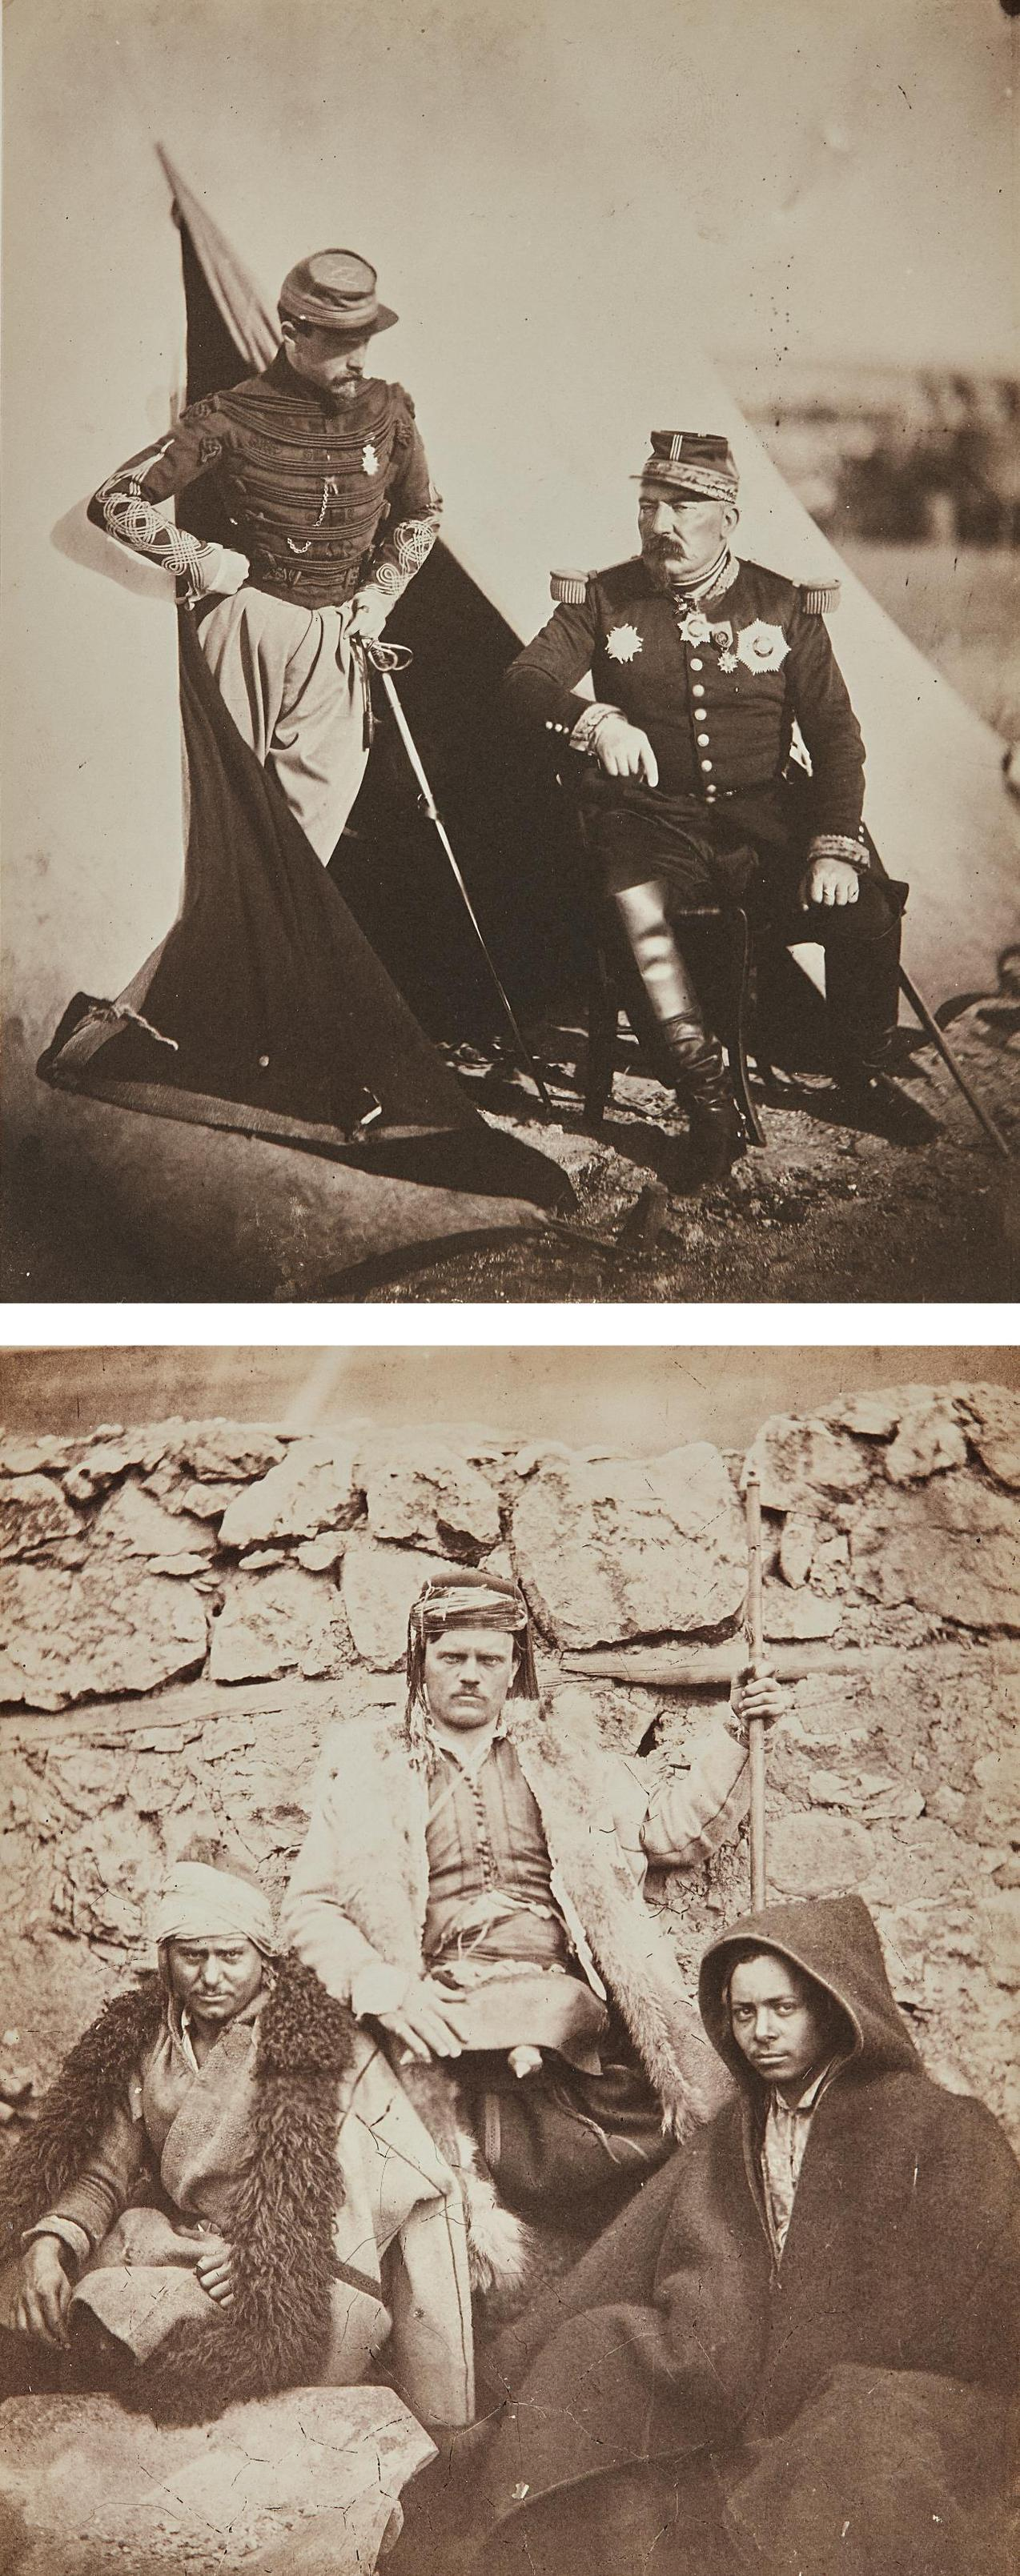 Roger Fenton - General Bosquet And Captain Dampierre And Three Croat Chiefs-1855